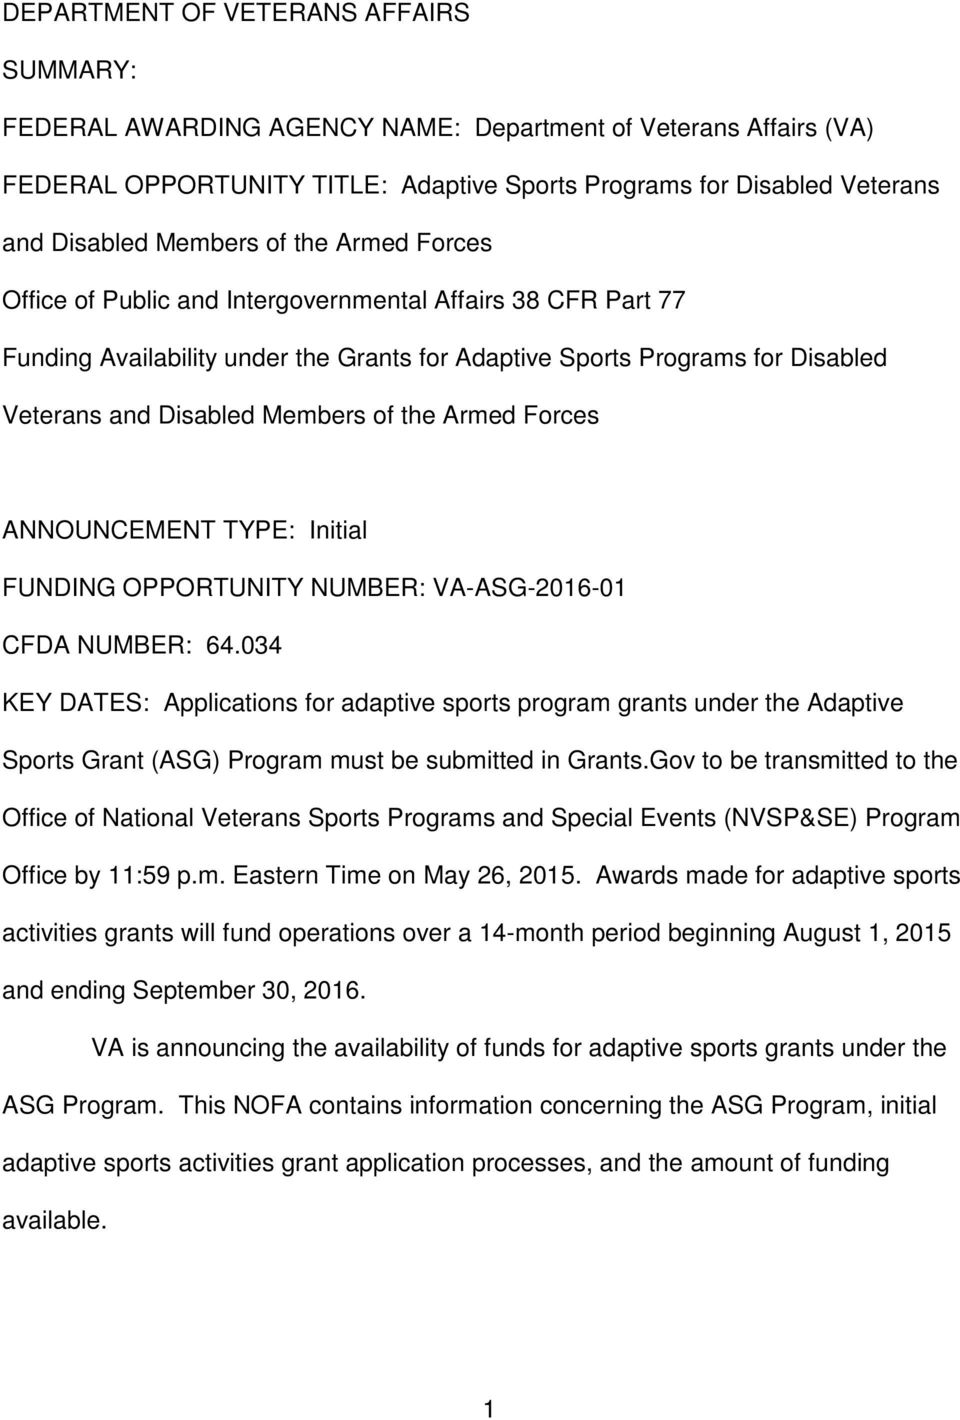 of the Armed Forces ANNOUNCEMENT TYPE: Initial FUNDING OPPORTUNITY NUMBER: VA-ASG-2016-01 CFDA NUMBER: 64.